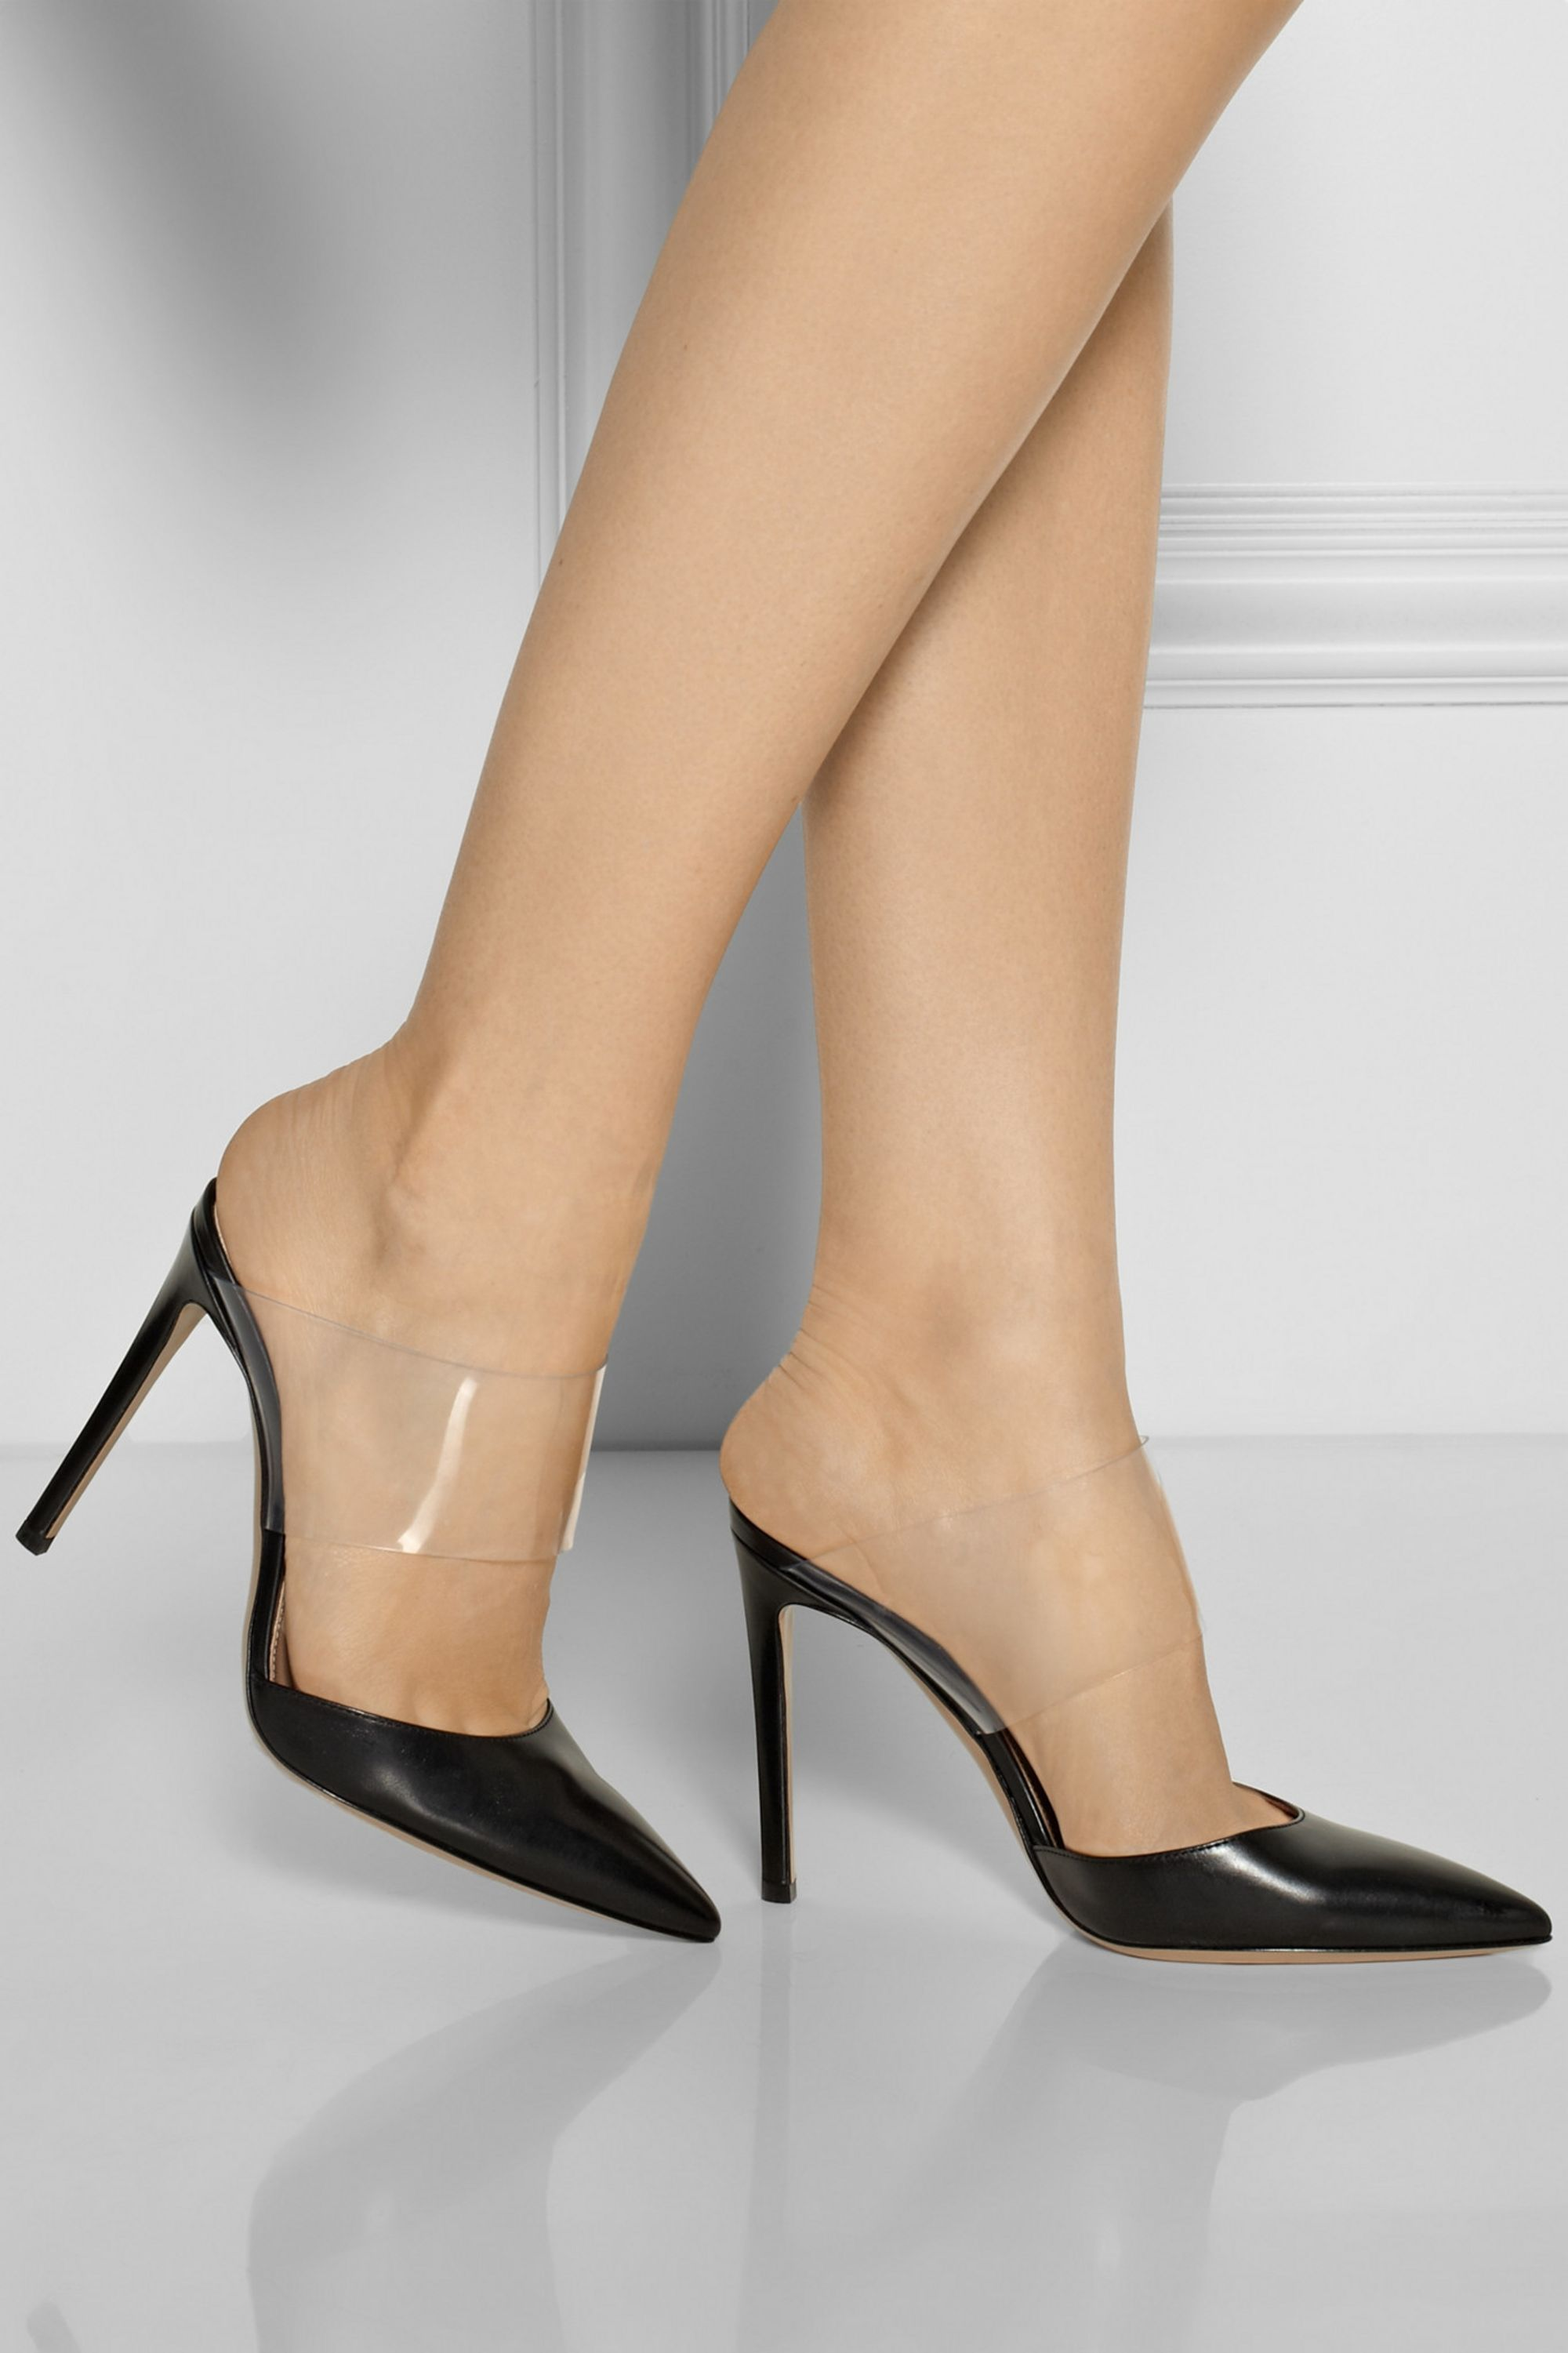 Gianvito Rossi Leather and PVC pumps